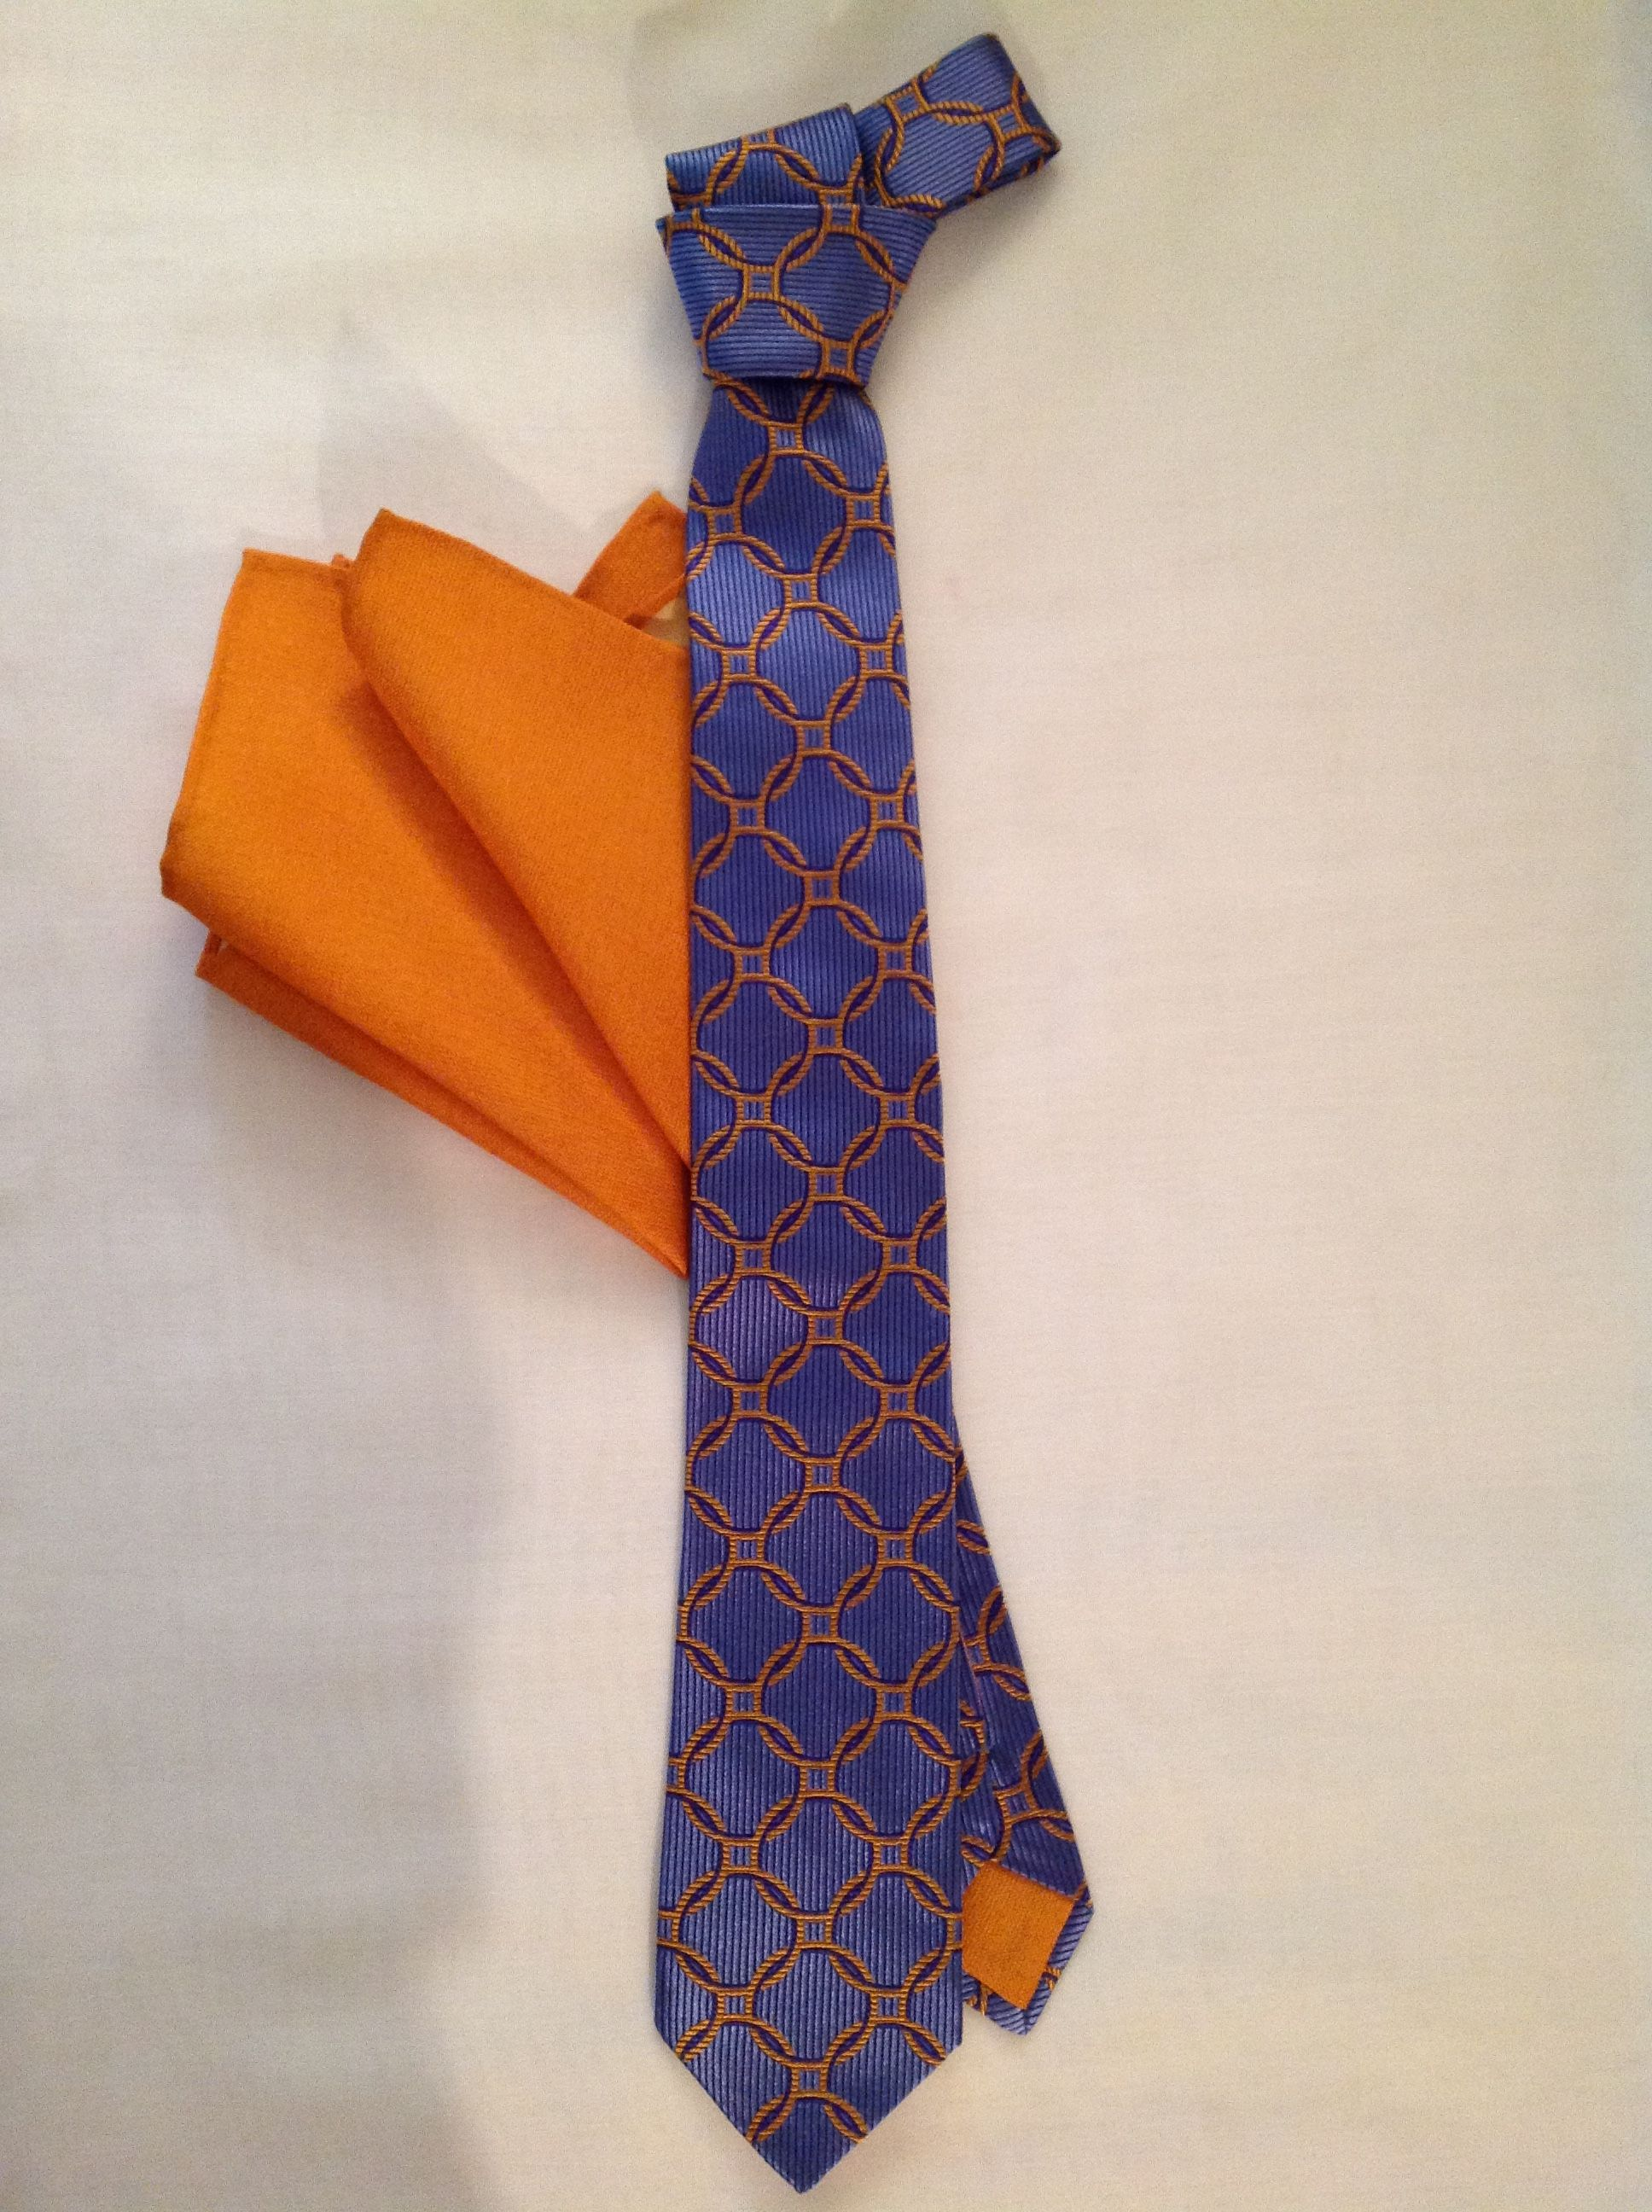 Italian Silk blue with navy and orange rings necktie with matching pocket square. www.Bitchinbowties.com